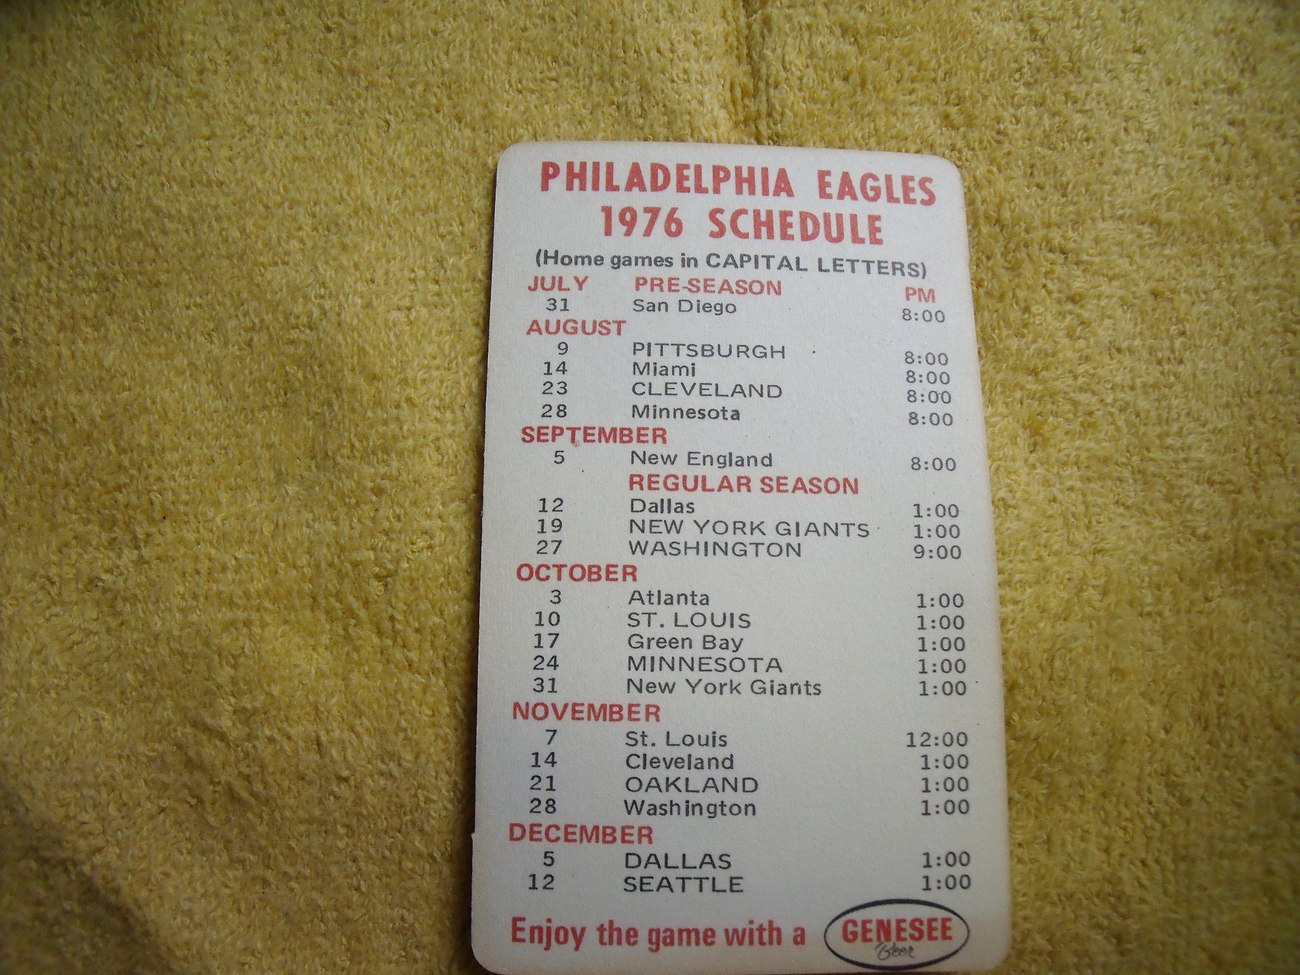 Original 1976 Philadelphia Eagles Schedule by Genesee